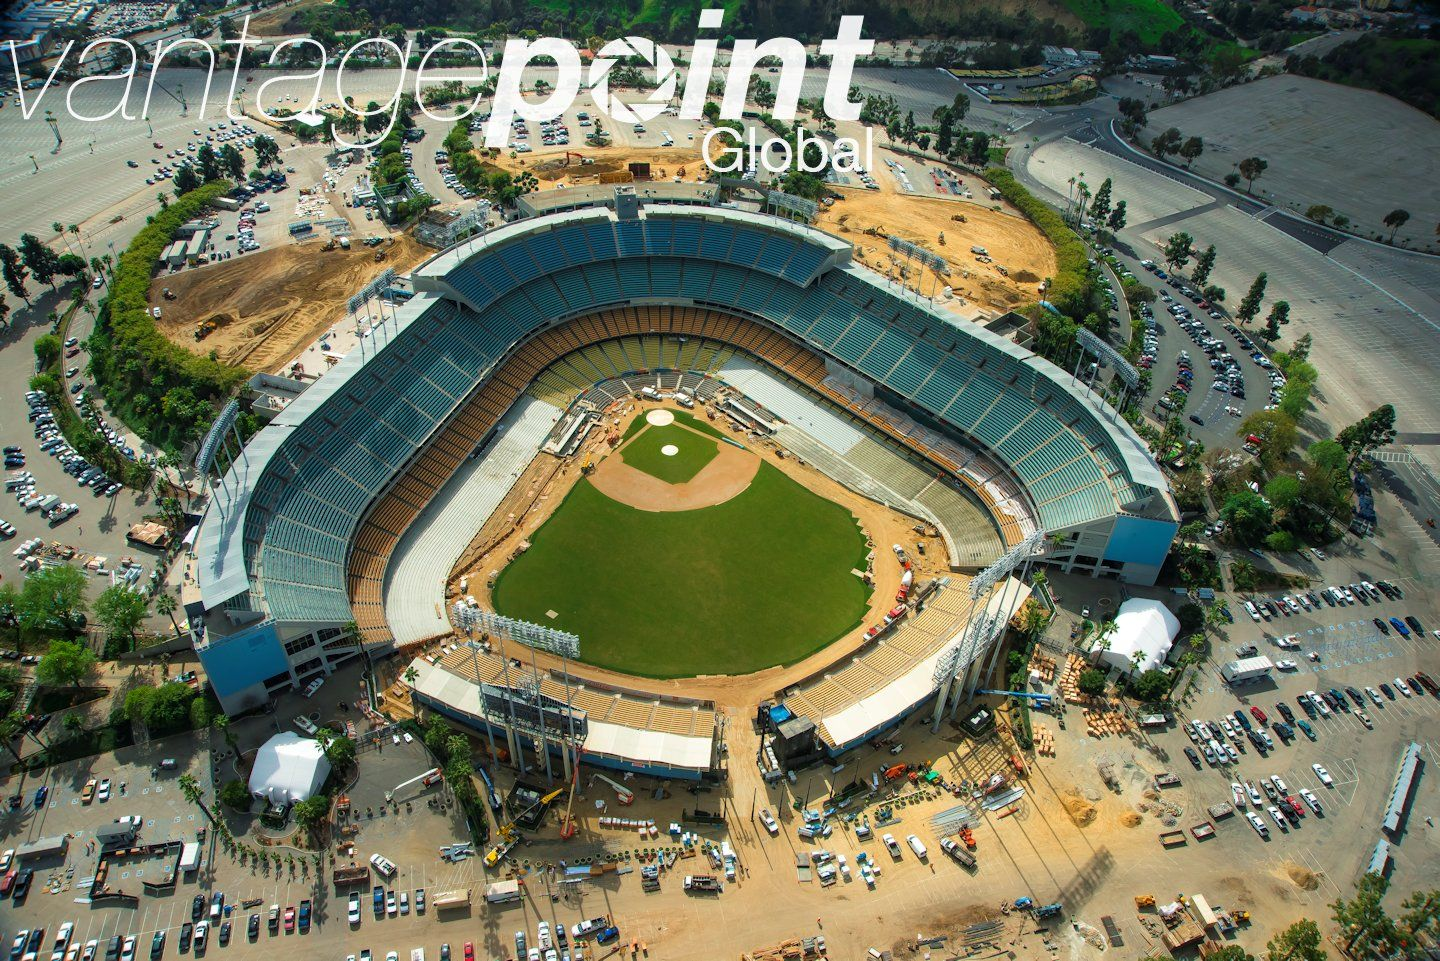 Vantage Point Globals Aerial Photography Images Can Be Accessed By - Aerial mapping software